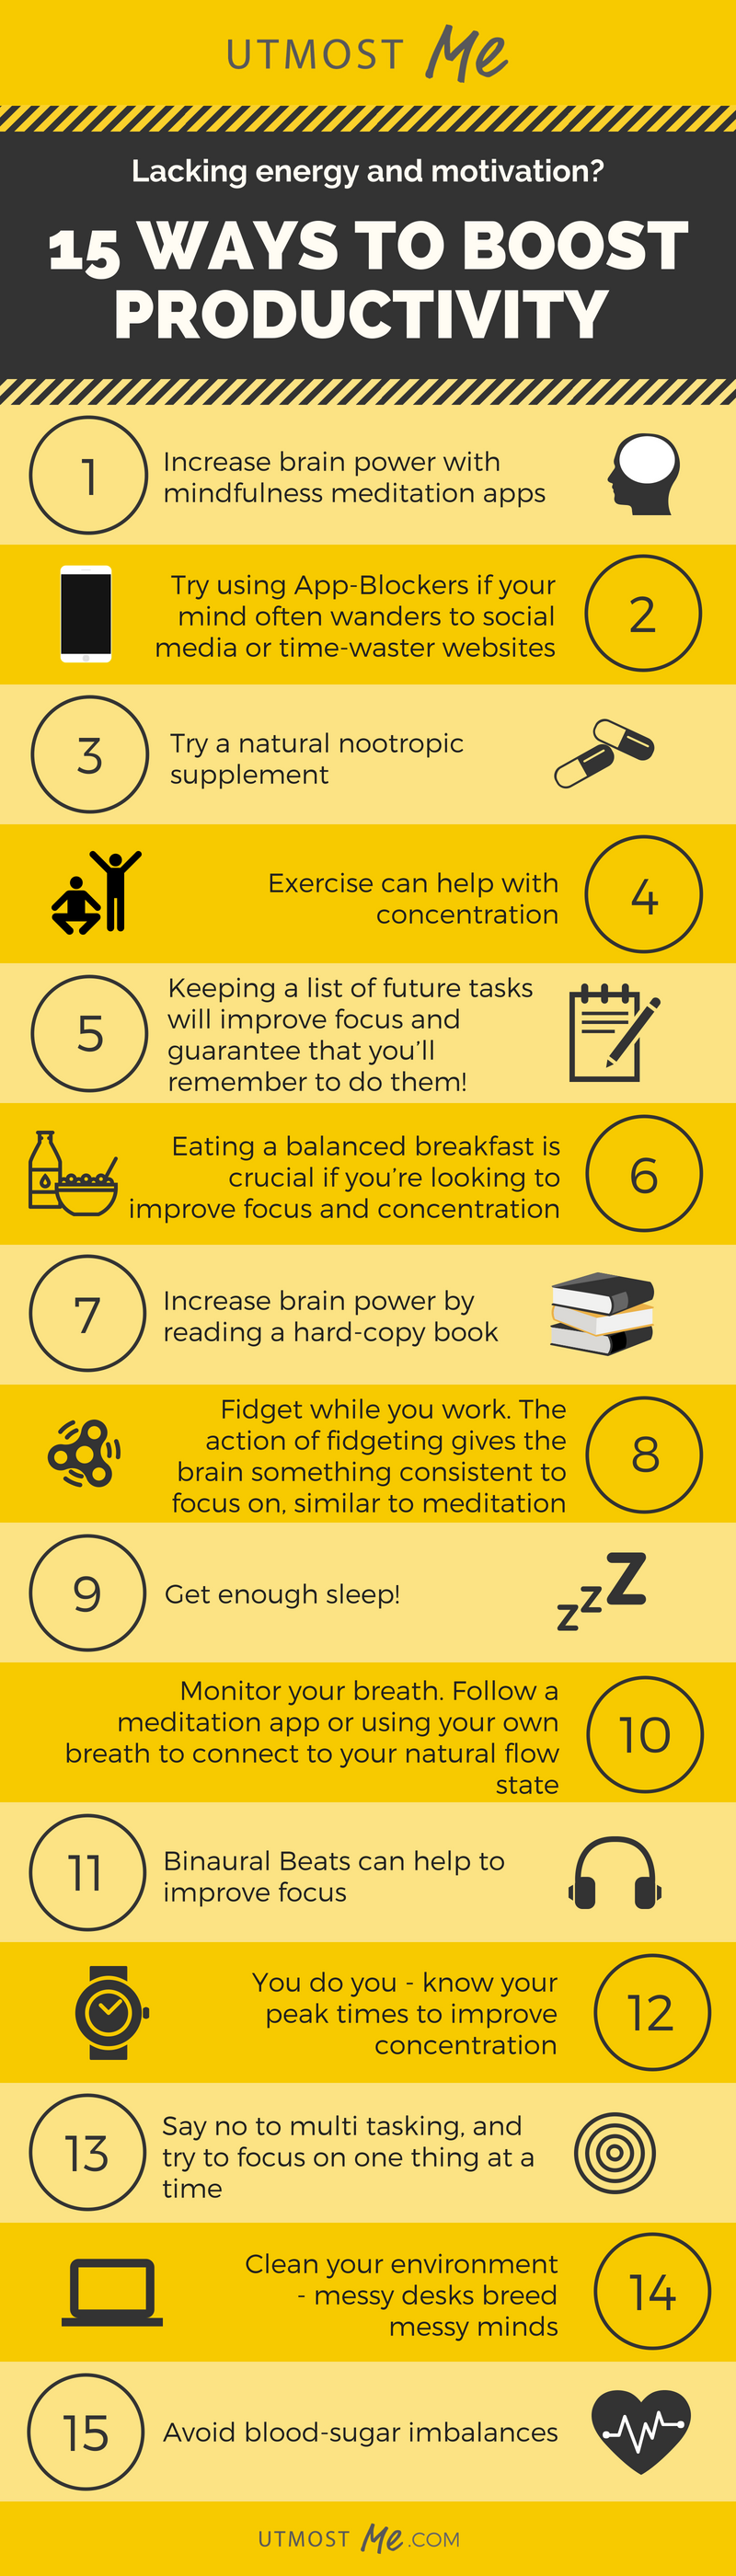 15 ways to boost productivity